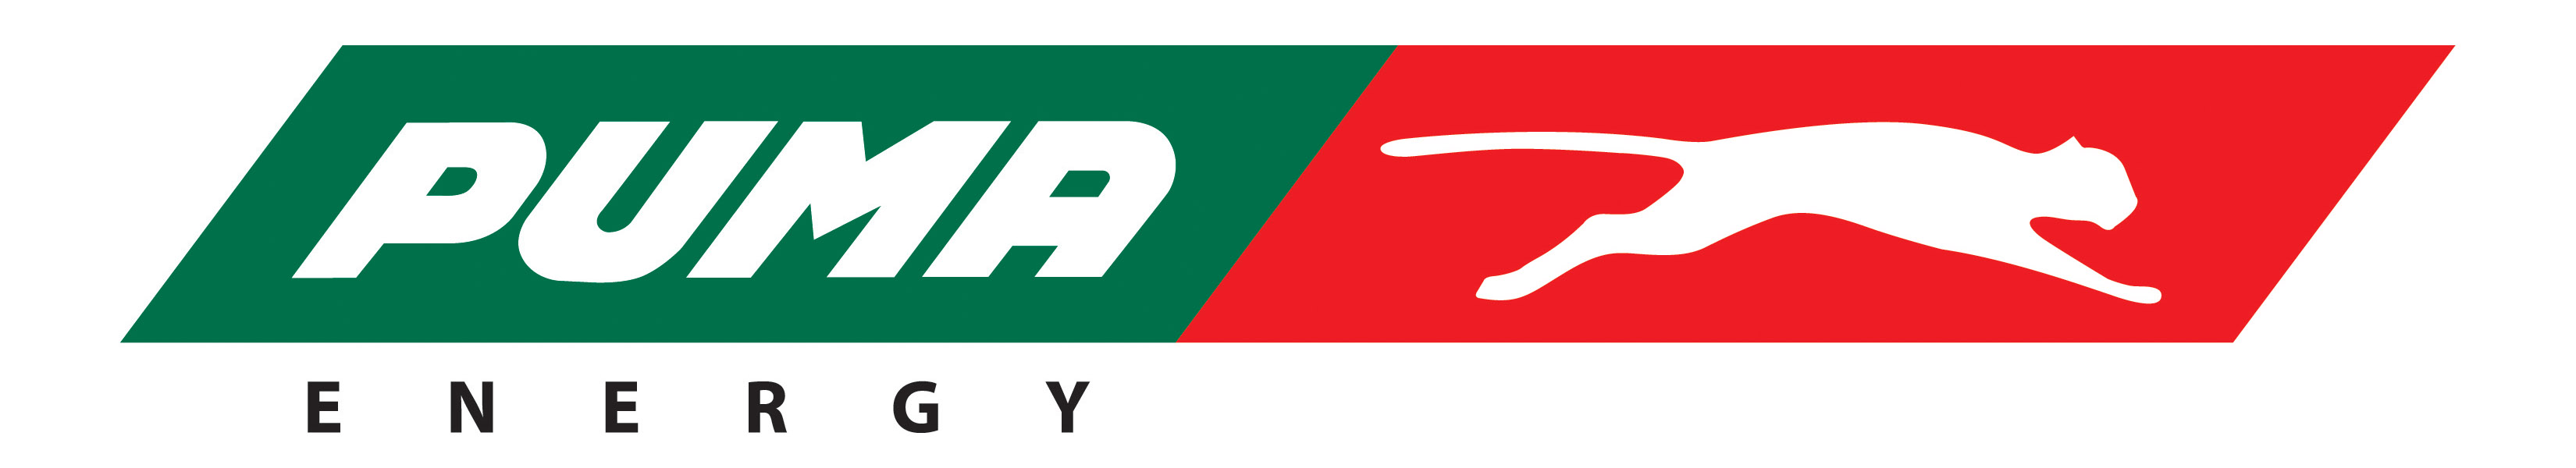 LOGO PUMA ENERGY JPEG